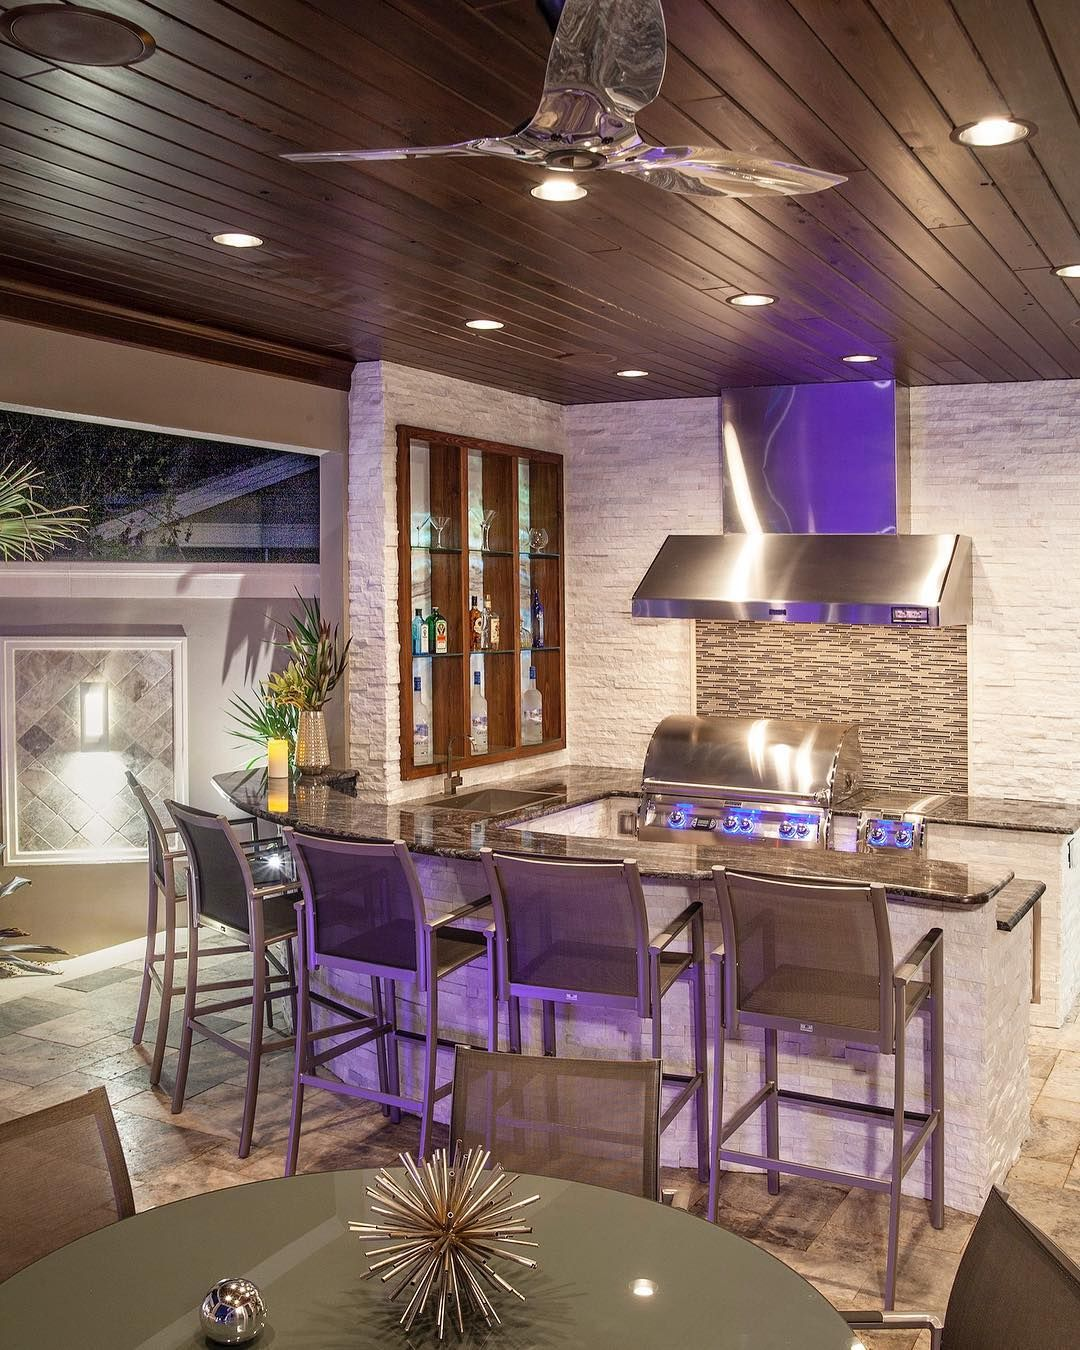 Ryan Hughes Design Build On Instagram Outdoor Kitchen With A Modern Vibe Featuring A Backlit Onyx Bar Shelves An Outdoor Kitchen Modern Vibe Building Design